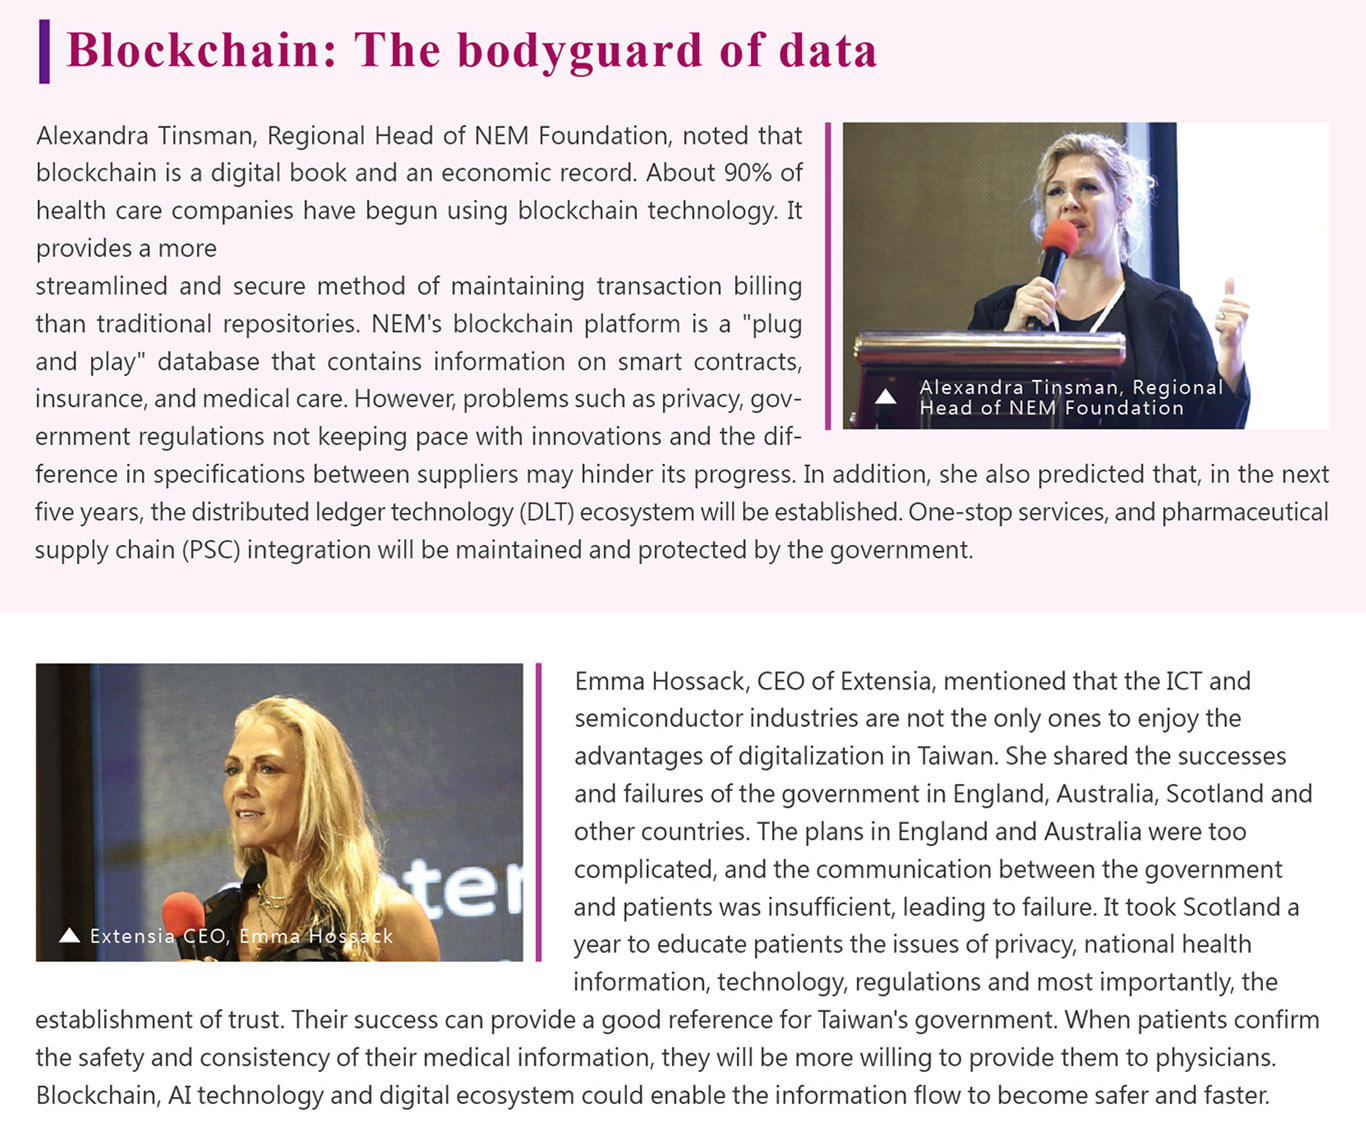 Alexandra Tinsman, Regional Head of NEM Foundation, noted that blockchain is a digital book and an economic record. About 90% of health care companies have begun using blockchain technology. It provides a more streamlined and secure method of maintaining transaction billing than traditional repositories. NEM's blockchain platform is a